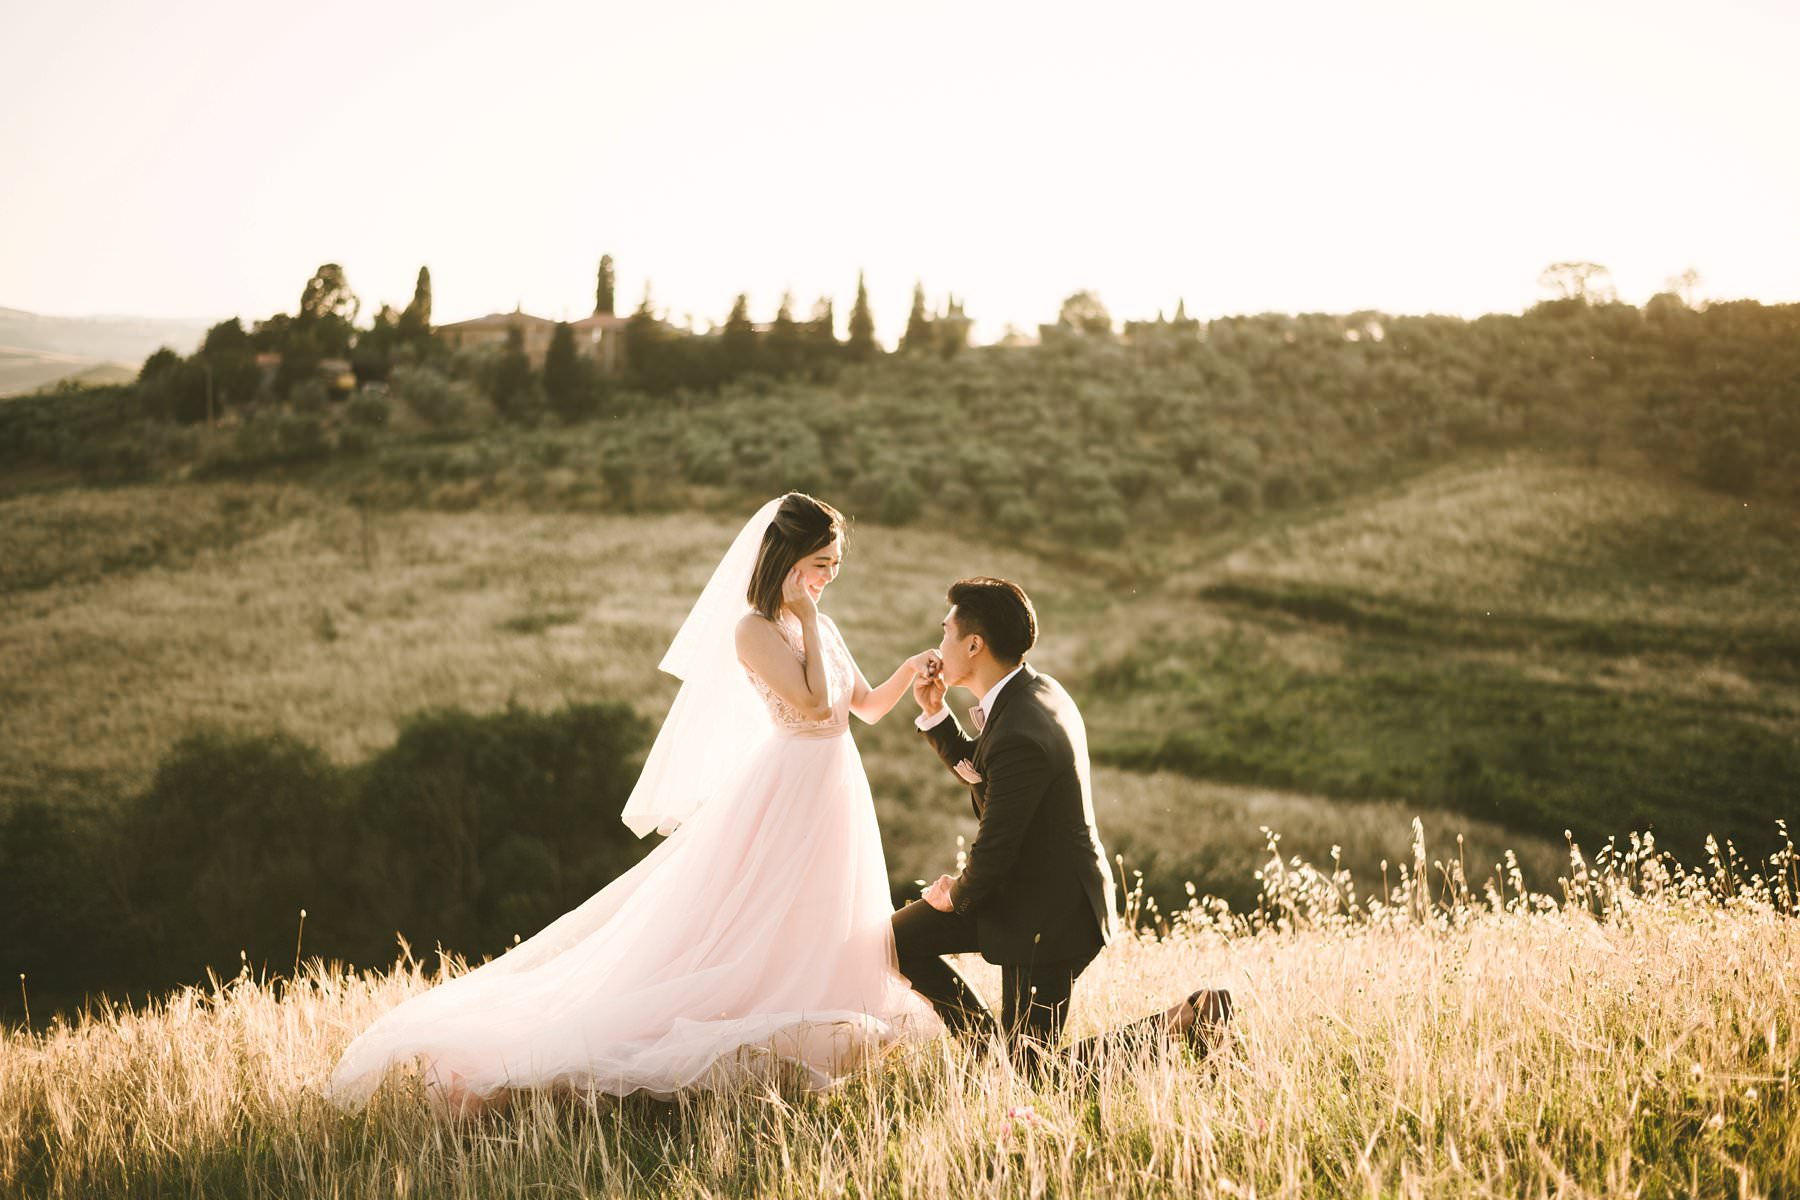 How to have honeymoon photos in Tuscany to treasure forever